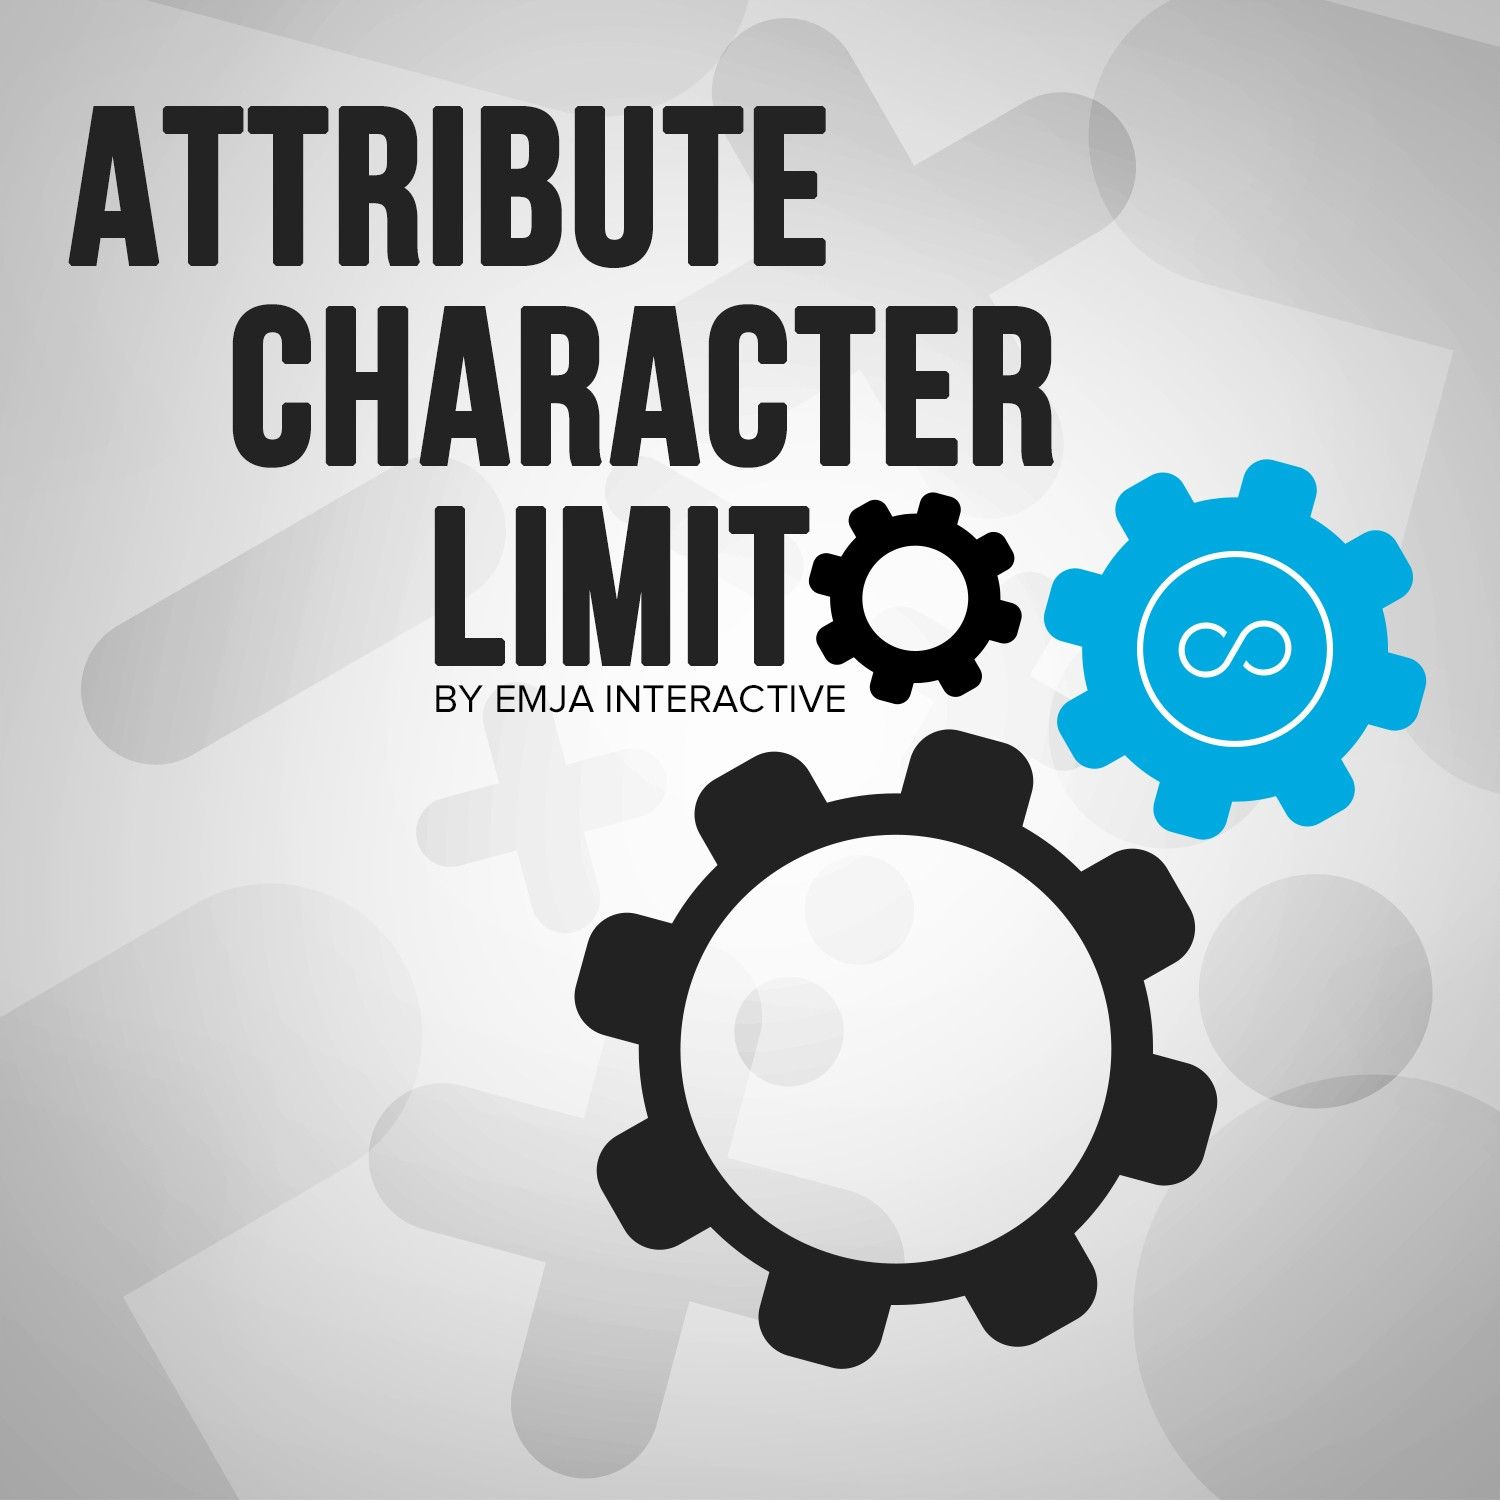 Attribute Character Limit